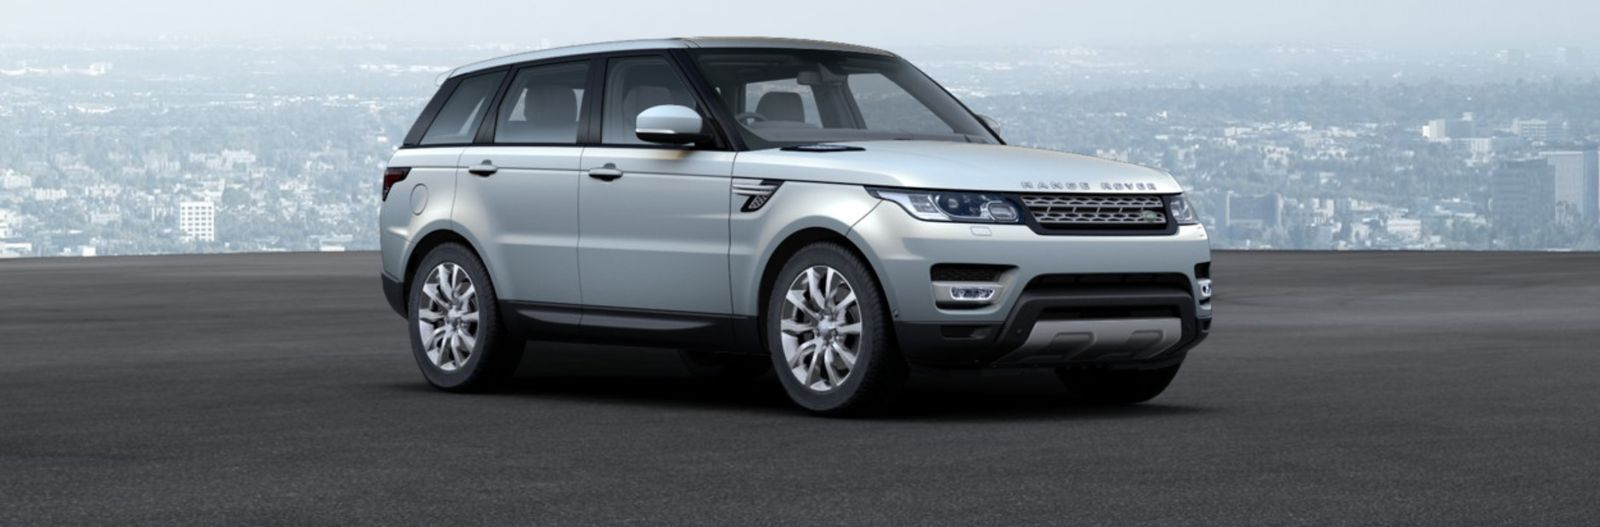 Range Rover Sport Colours Guide Carwow